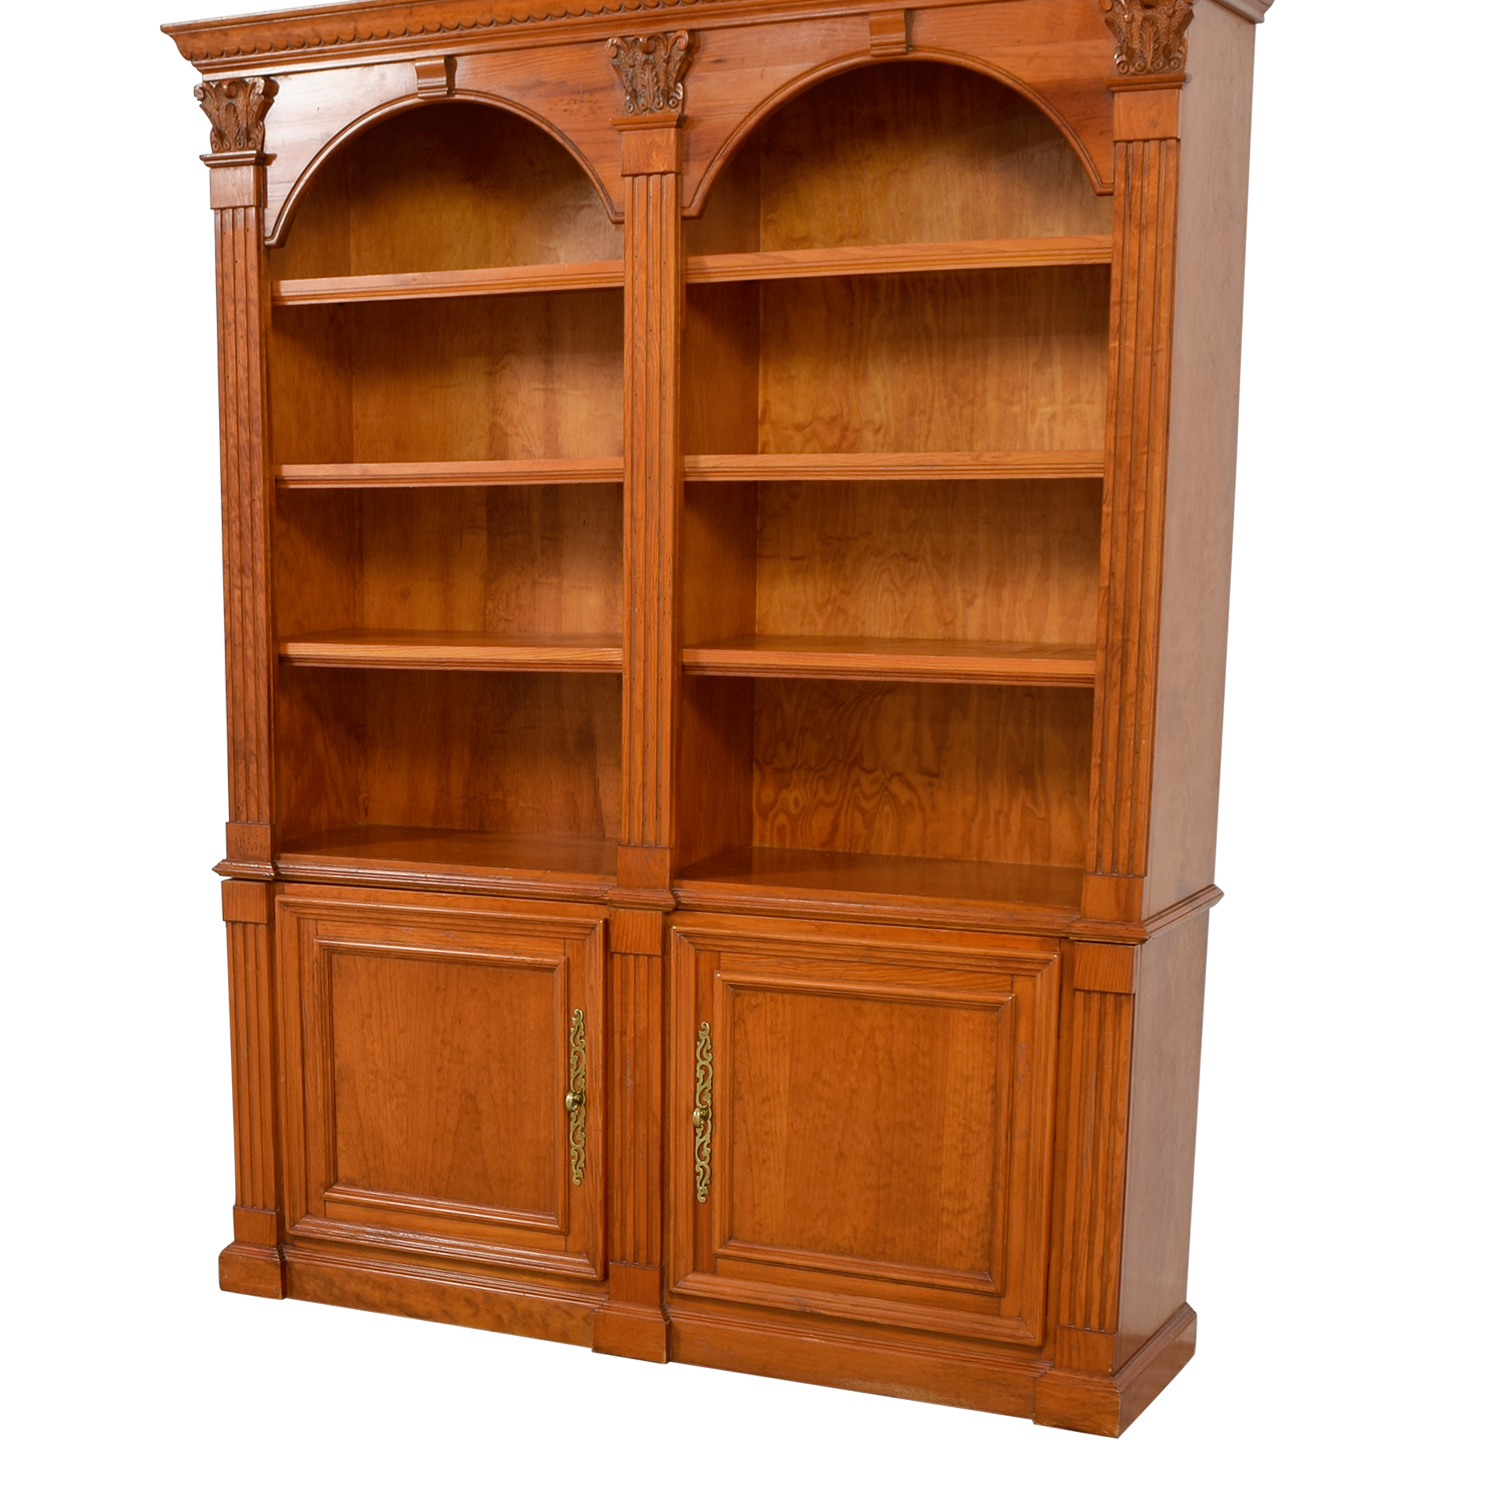 Hamilton Heritage Hamilton Heritage Double Bookcase with Storage